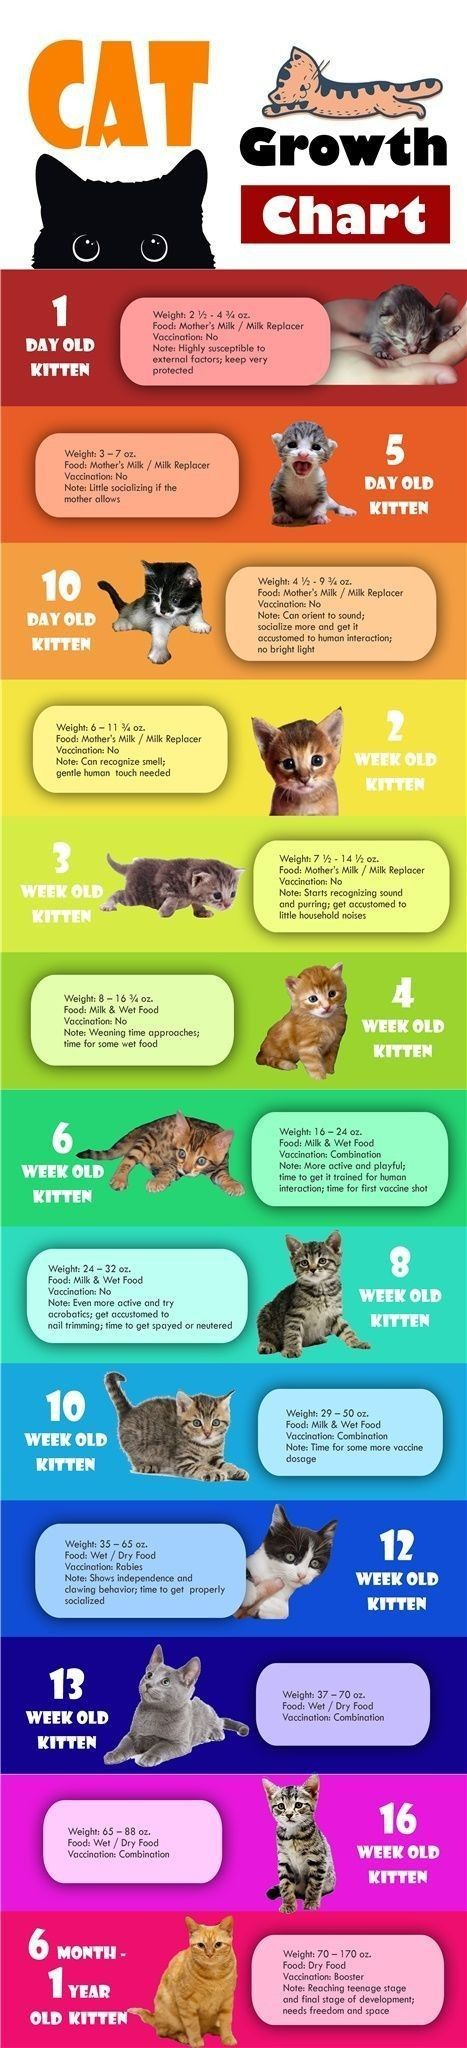 Pin On Cat Development Stages